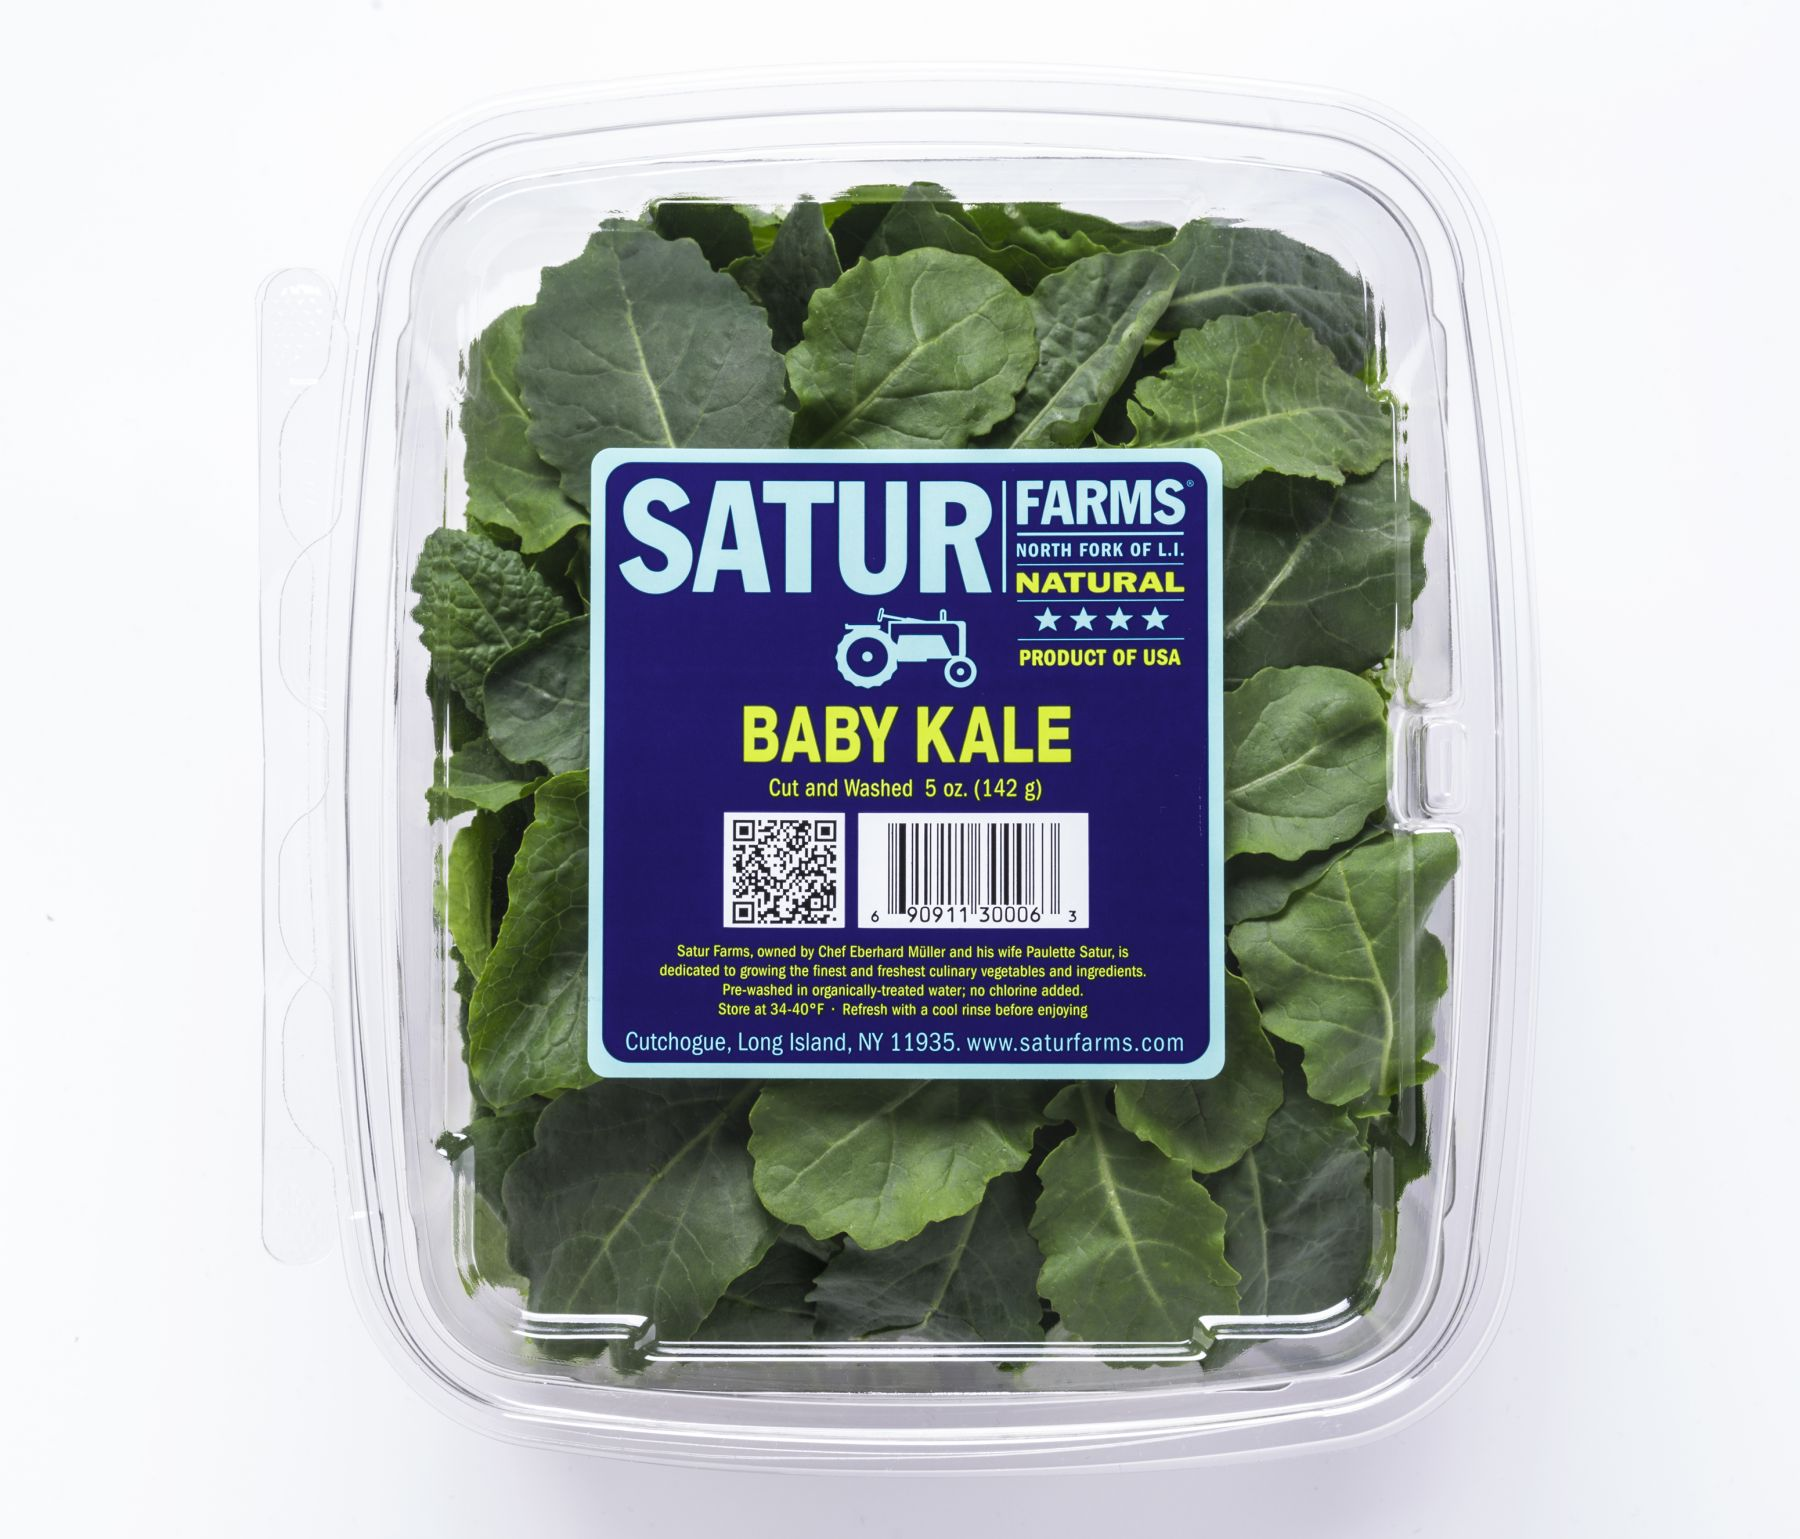 Baby Kale Retail Clamshell Pack